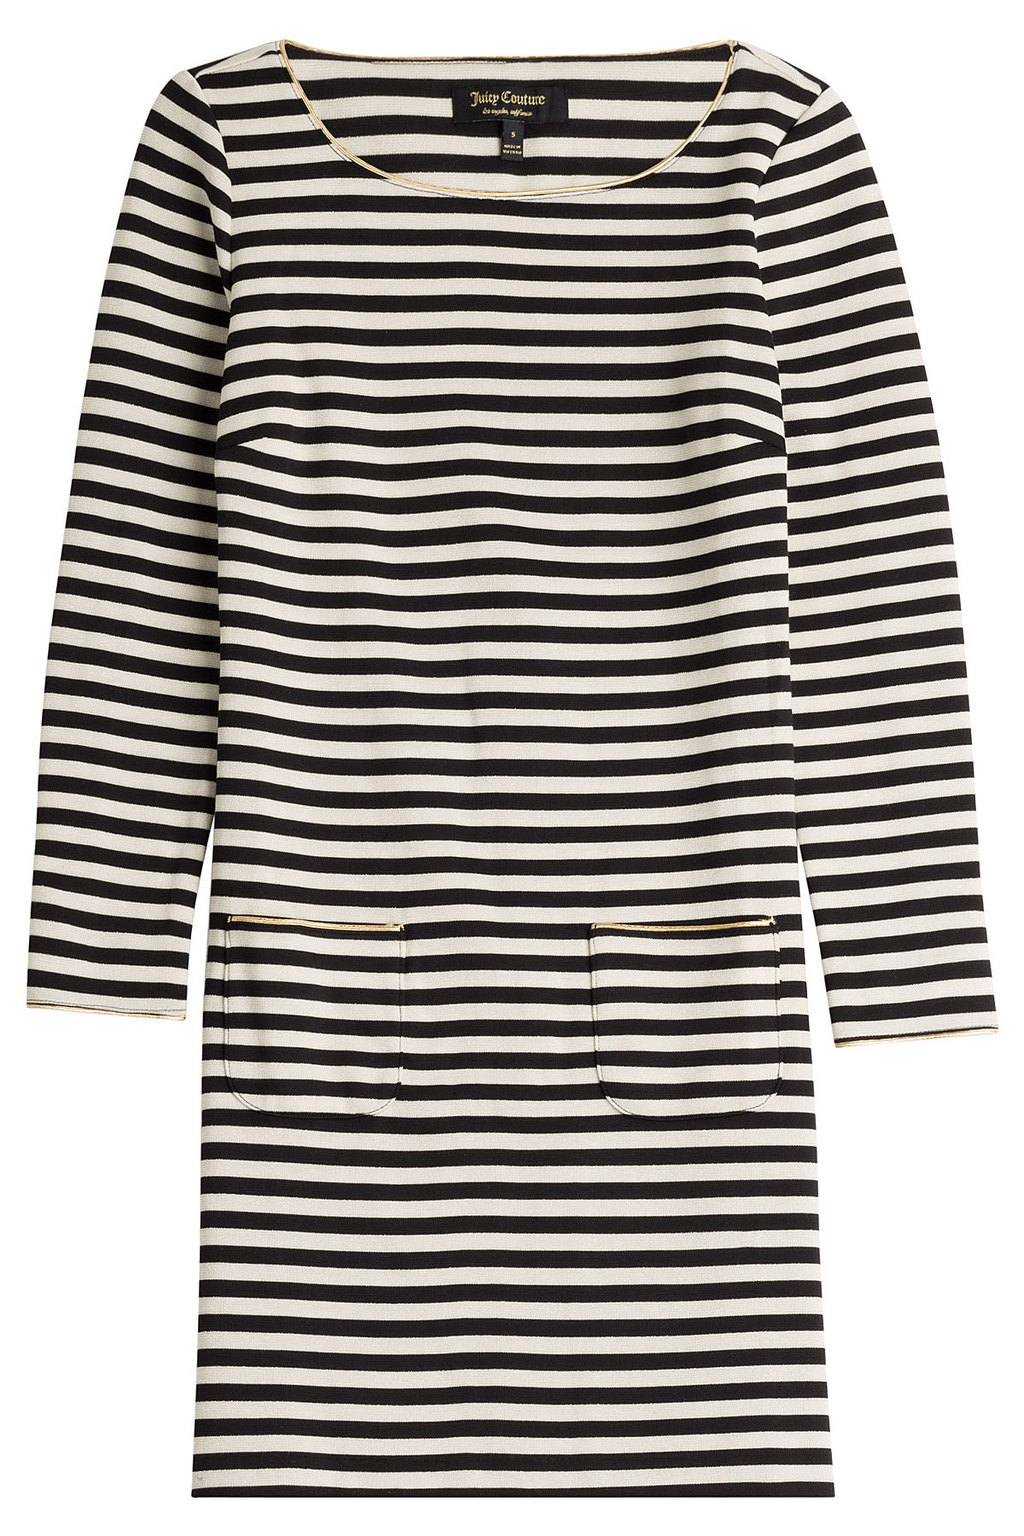 Striped Jersey Dress - style: shift; length: mid thigh; neckline: round neck; pattern: horizontal stripes; secondary colour: ivory/cream; predominant colour: black; occasions: casual, creative work; fit: body skimming; fibres: polyester/polyamide - stretch; hip detail: subtle/flattering hip detail; sleeve length: long sleeve; sleeve style: standard; pattern type: fabric; pattern size: standard; texture group: jersey - stretchy/drapey; season: a/w 2015; wardrobe: basic